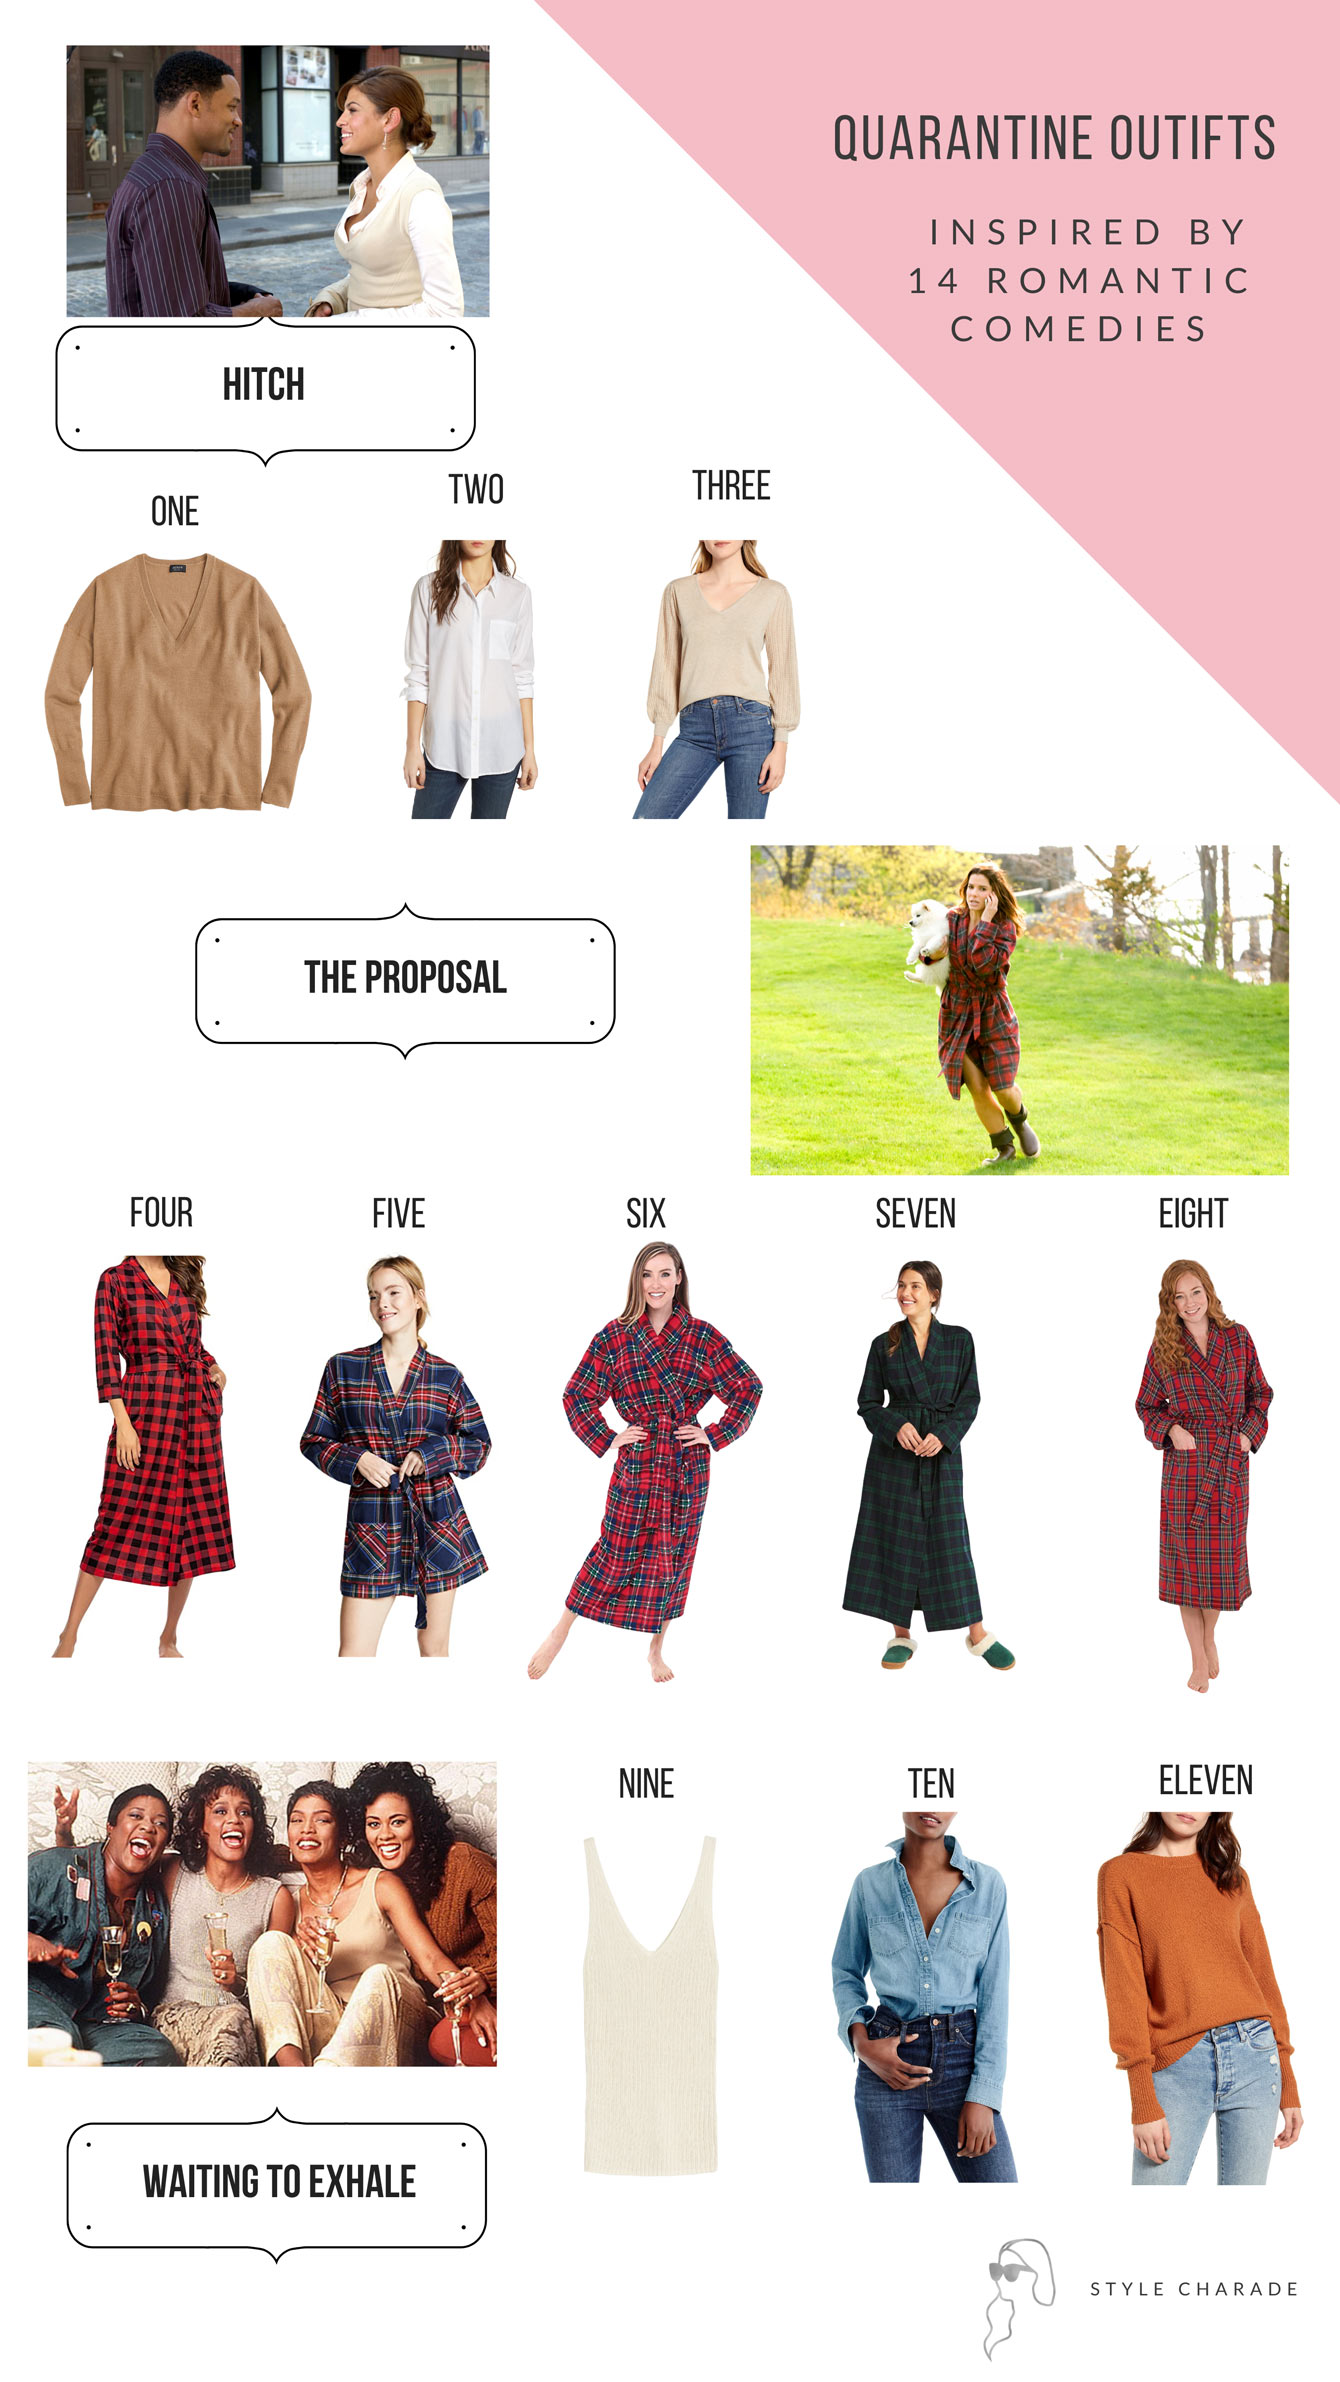 outfits-romantic-comedies